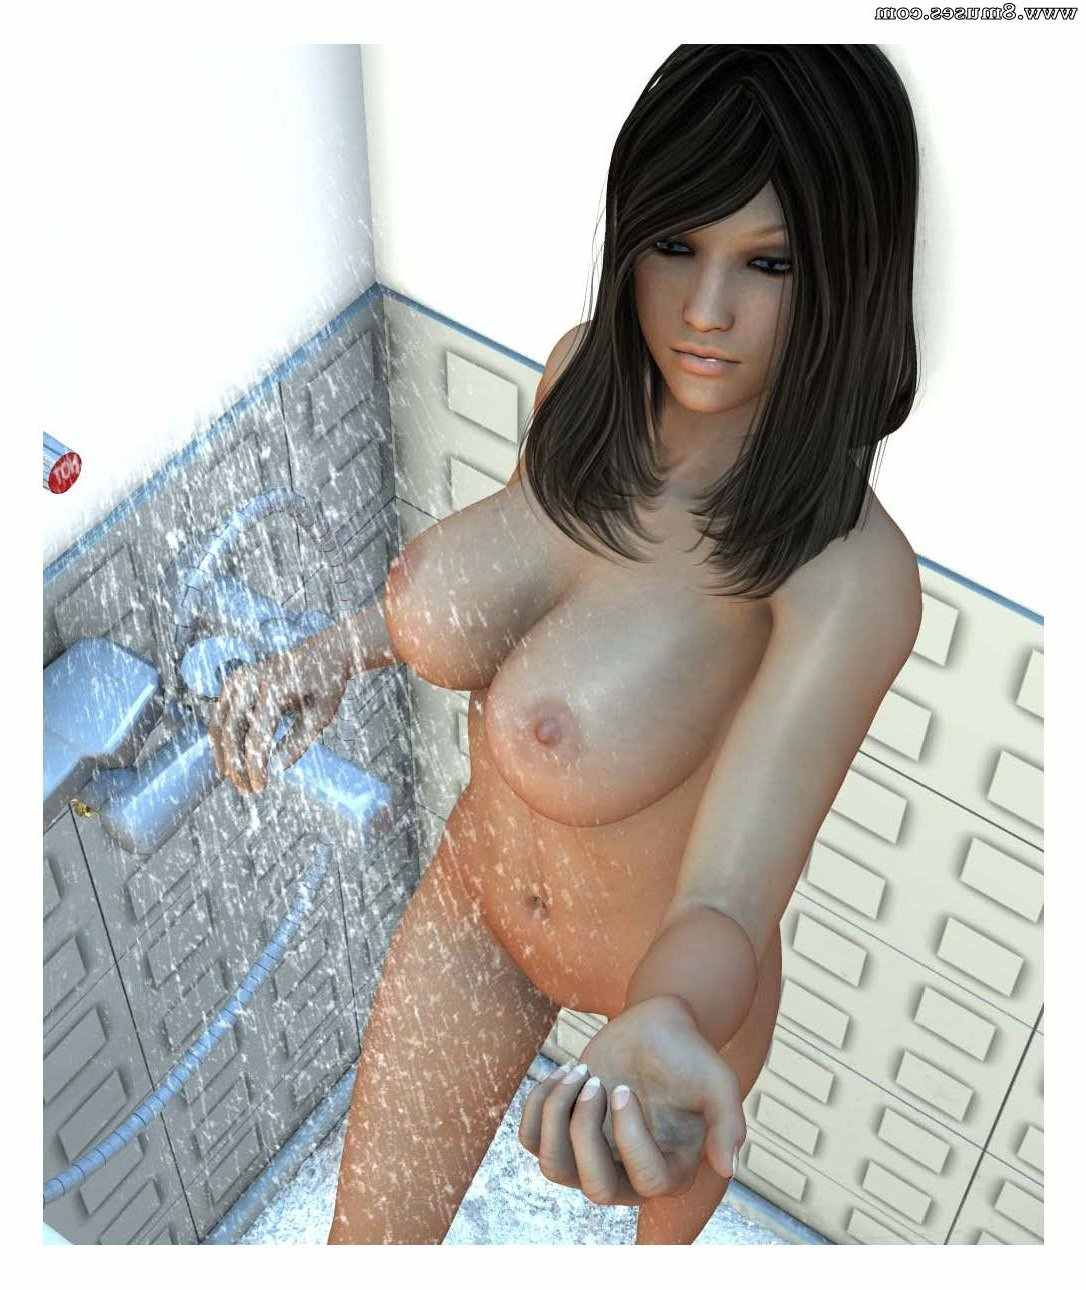 Tetsu-Comics/Gifted Gifted__8muses_-_Sex_and_Porn_Comics_112.jpg